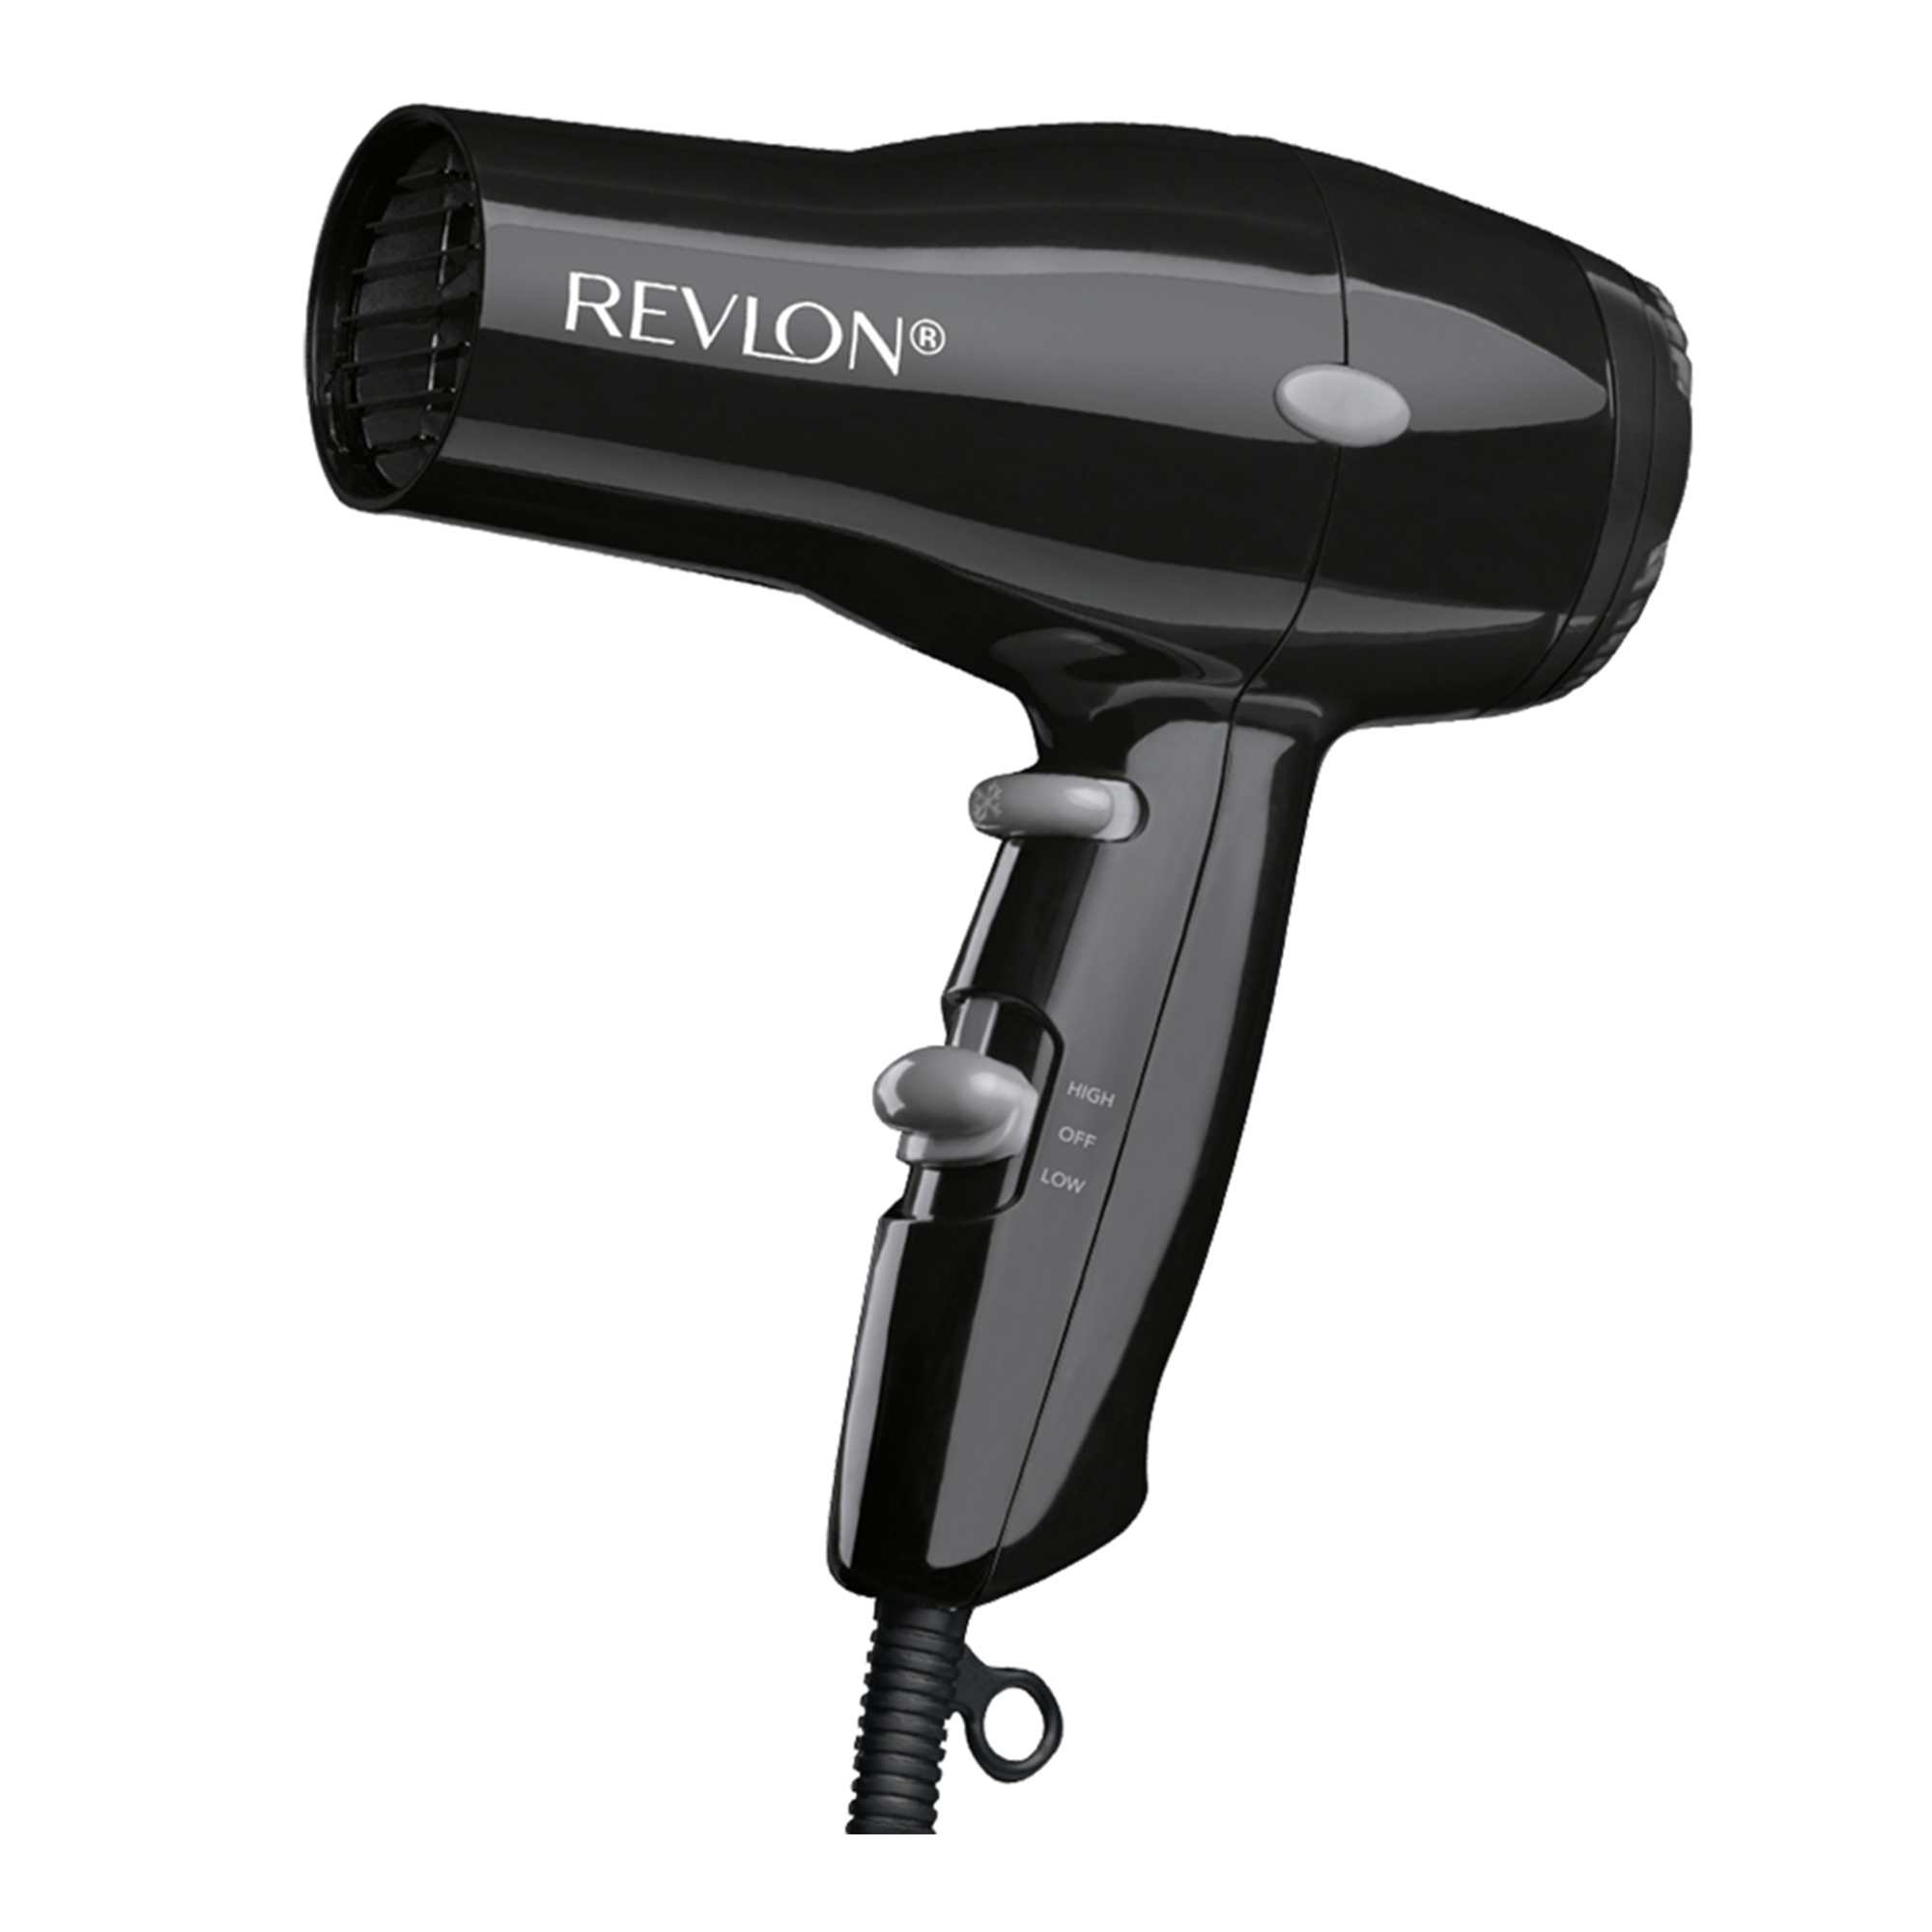 how to style hair with dryer and brush style by revlon rvdr5034 1875 watt 2 speed hair dryer 7009